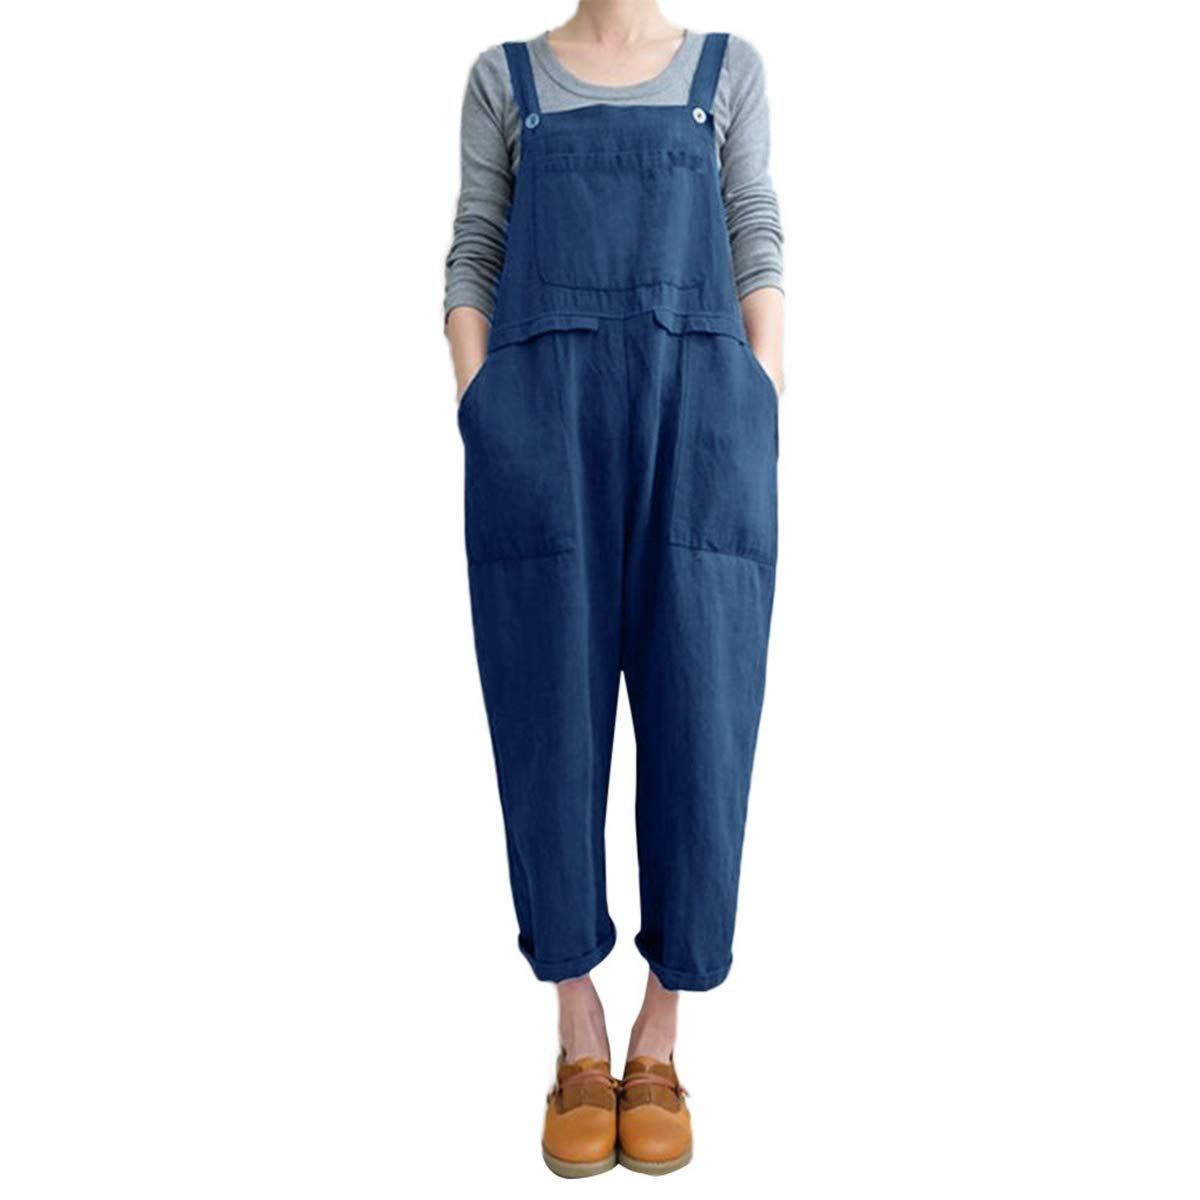 GWshop Sexy Jumpsuits, Women Girls Plus Size Overalls Sleeveless Dungarees Loose Cotton Linen Long Playsuit Casual Jumpsuit Blue M